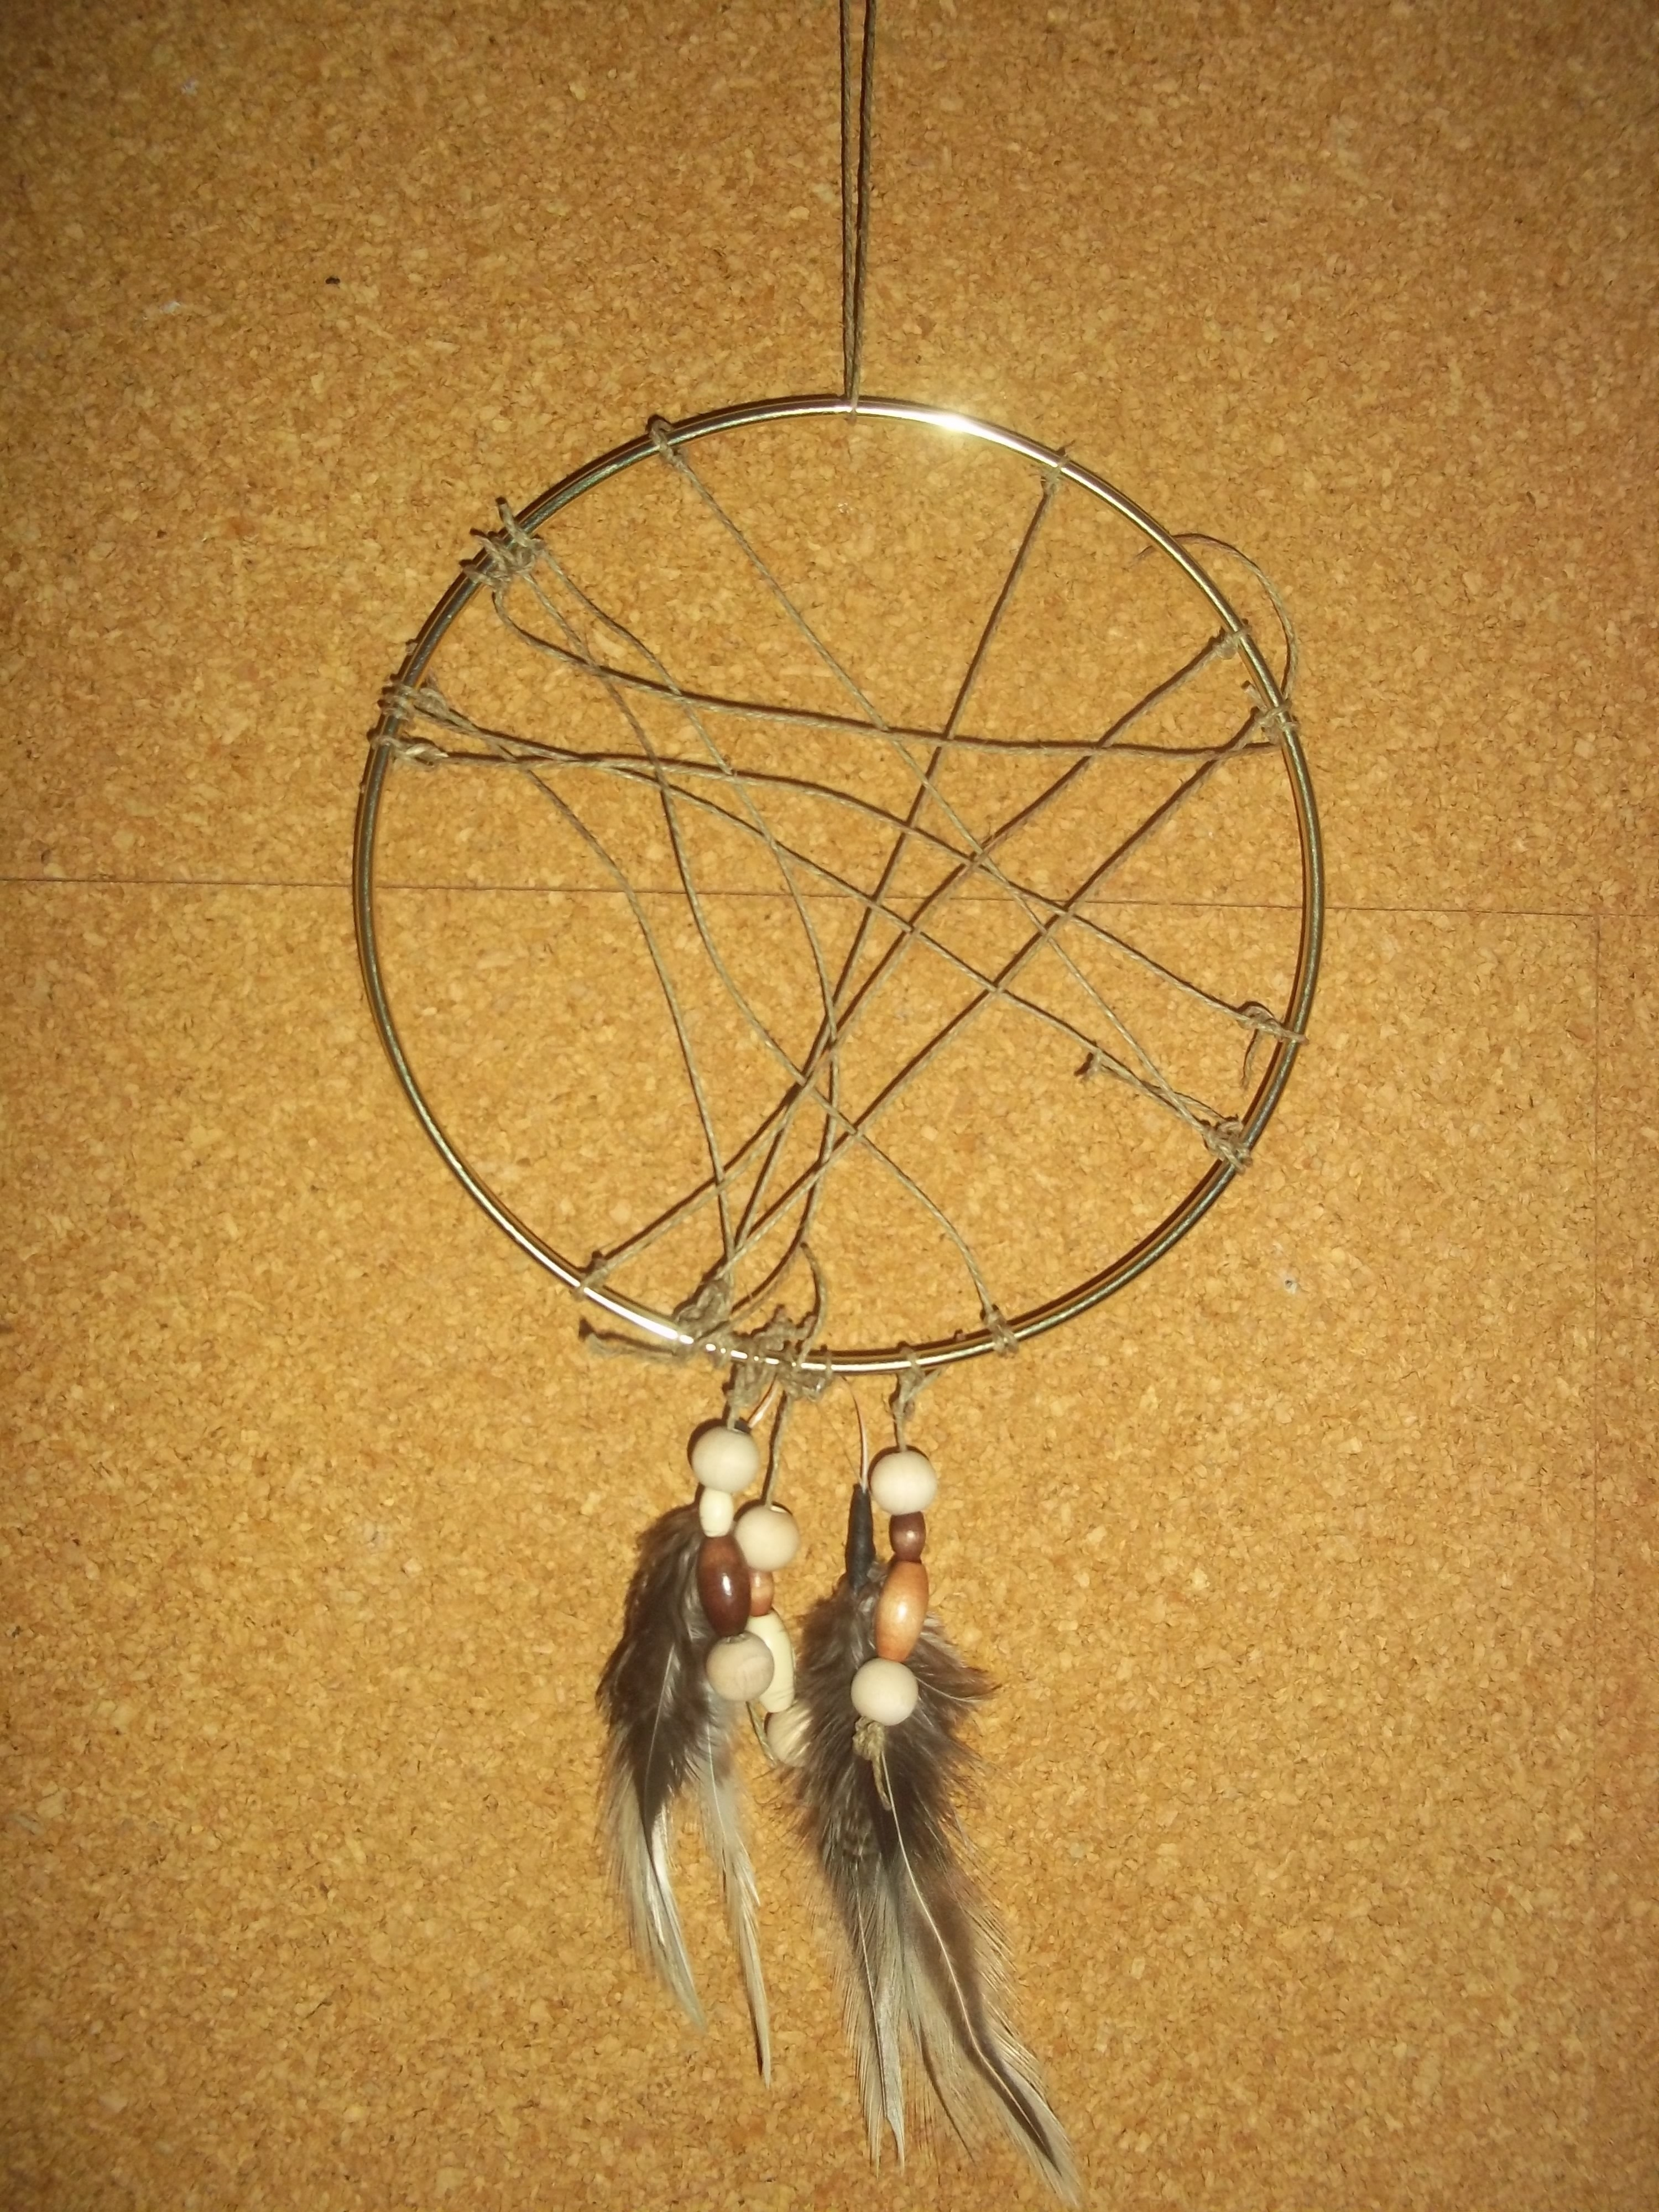 Dream Catcher 183 How To Make A Dream Catcher 183 Other On Cut